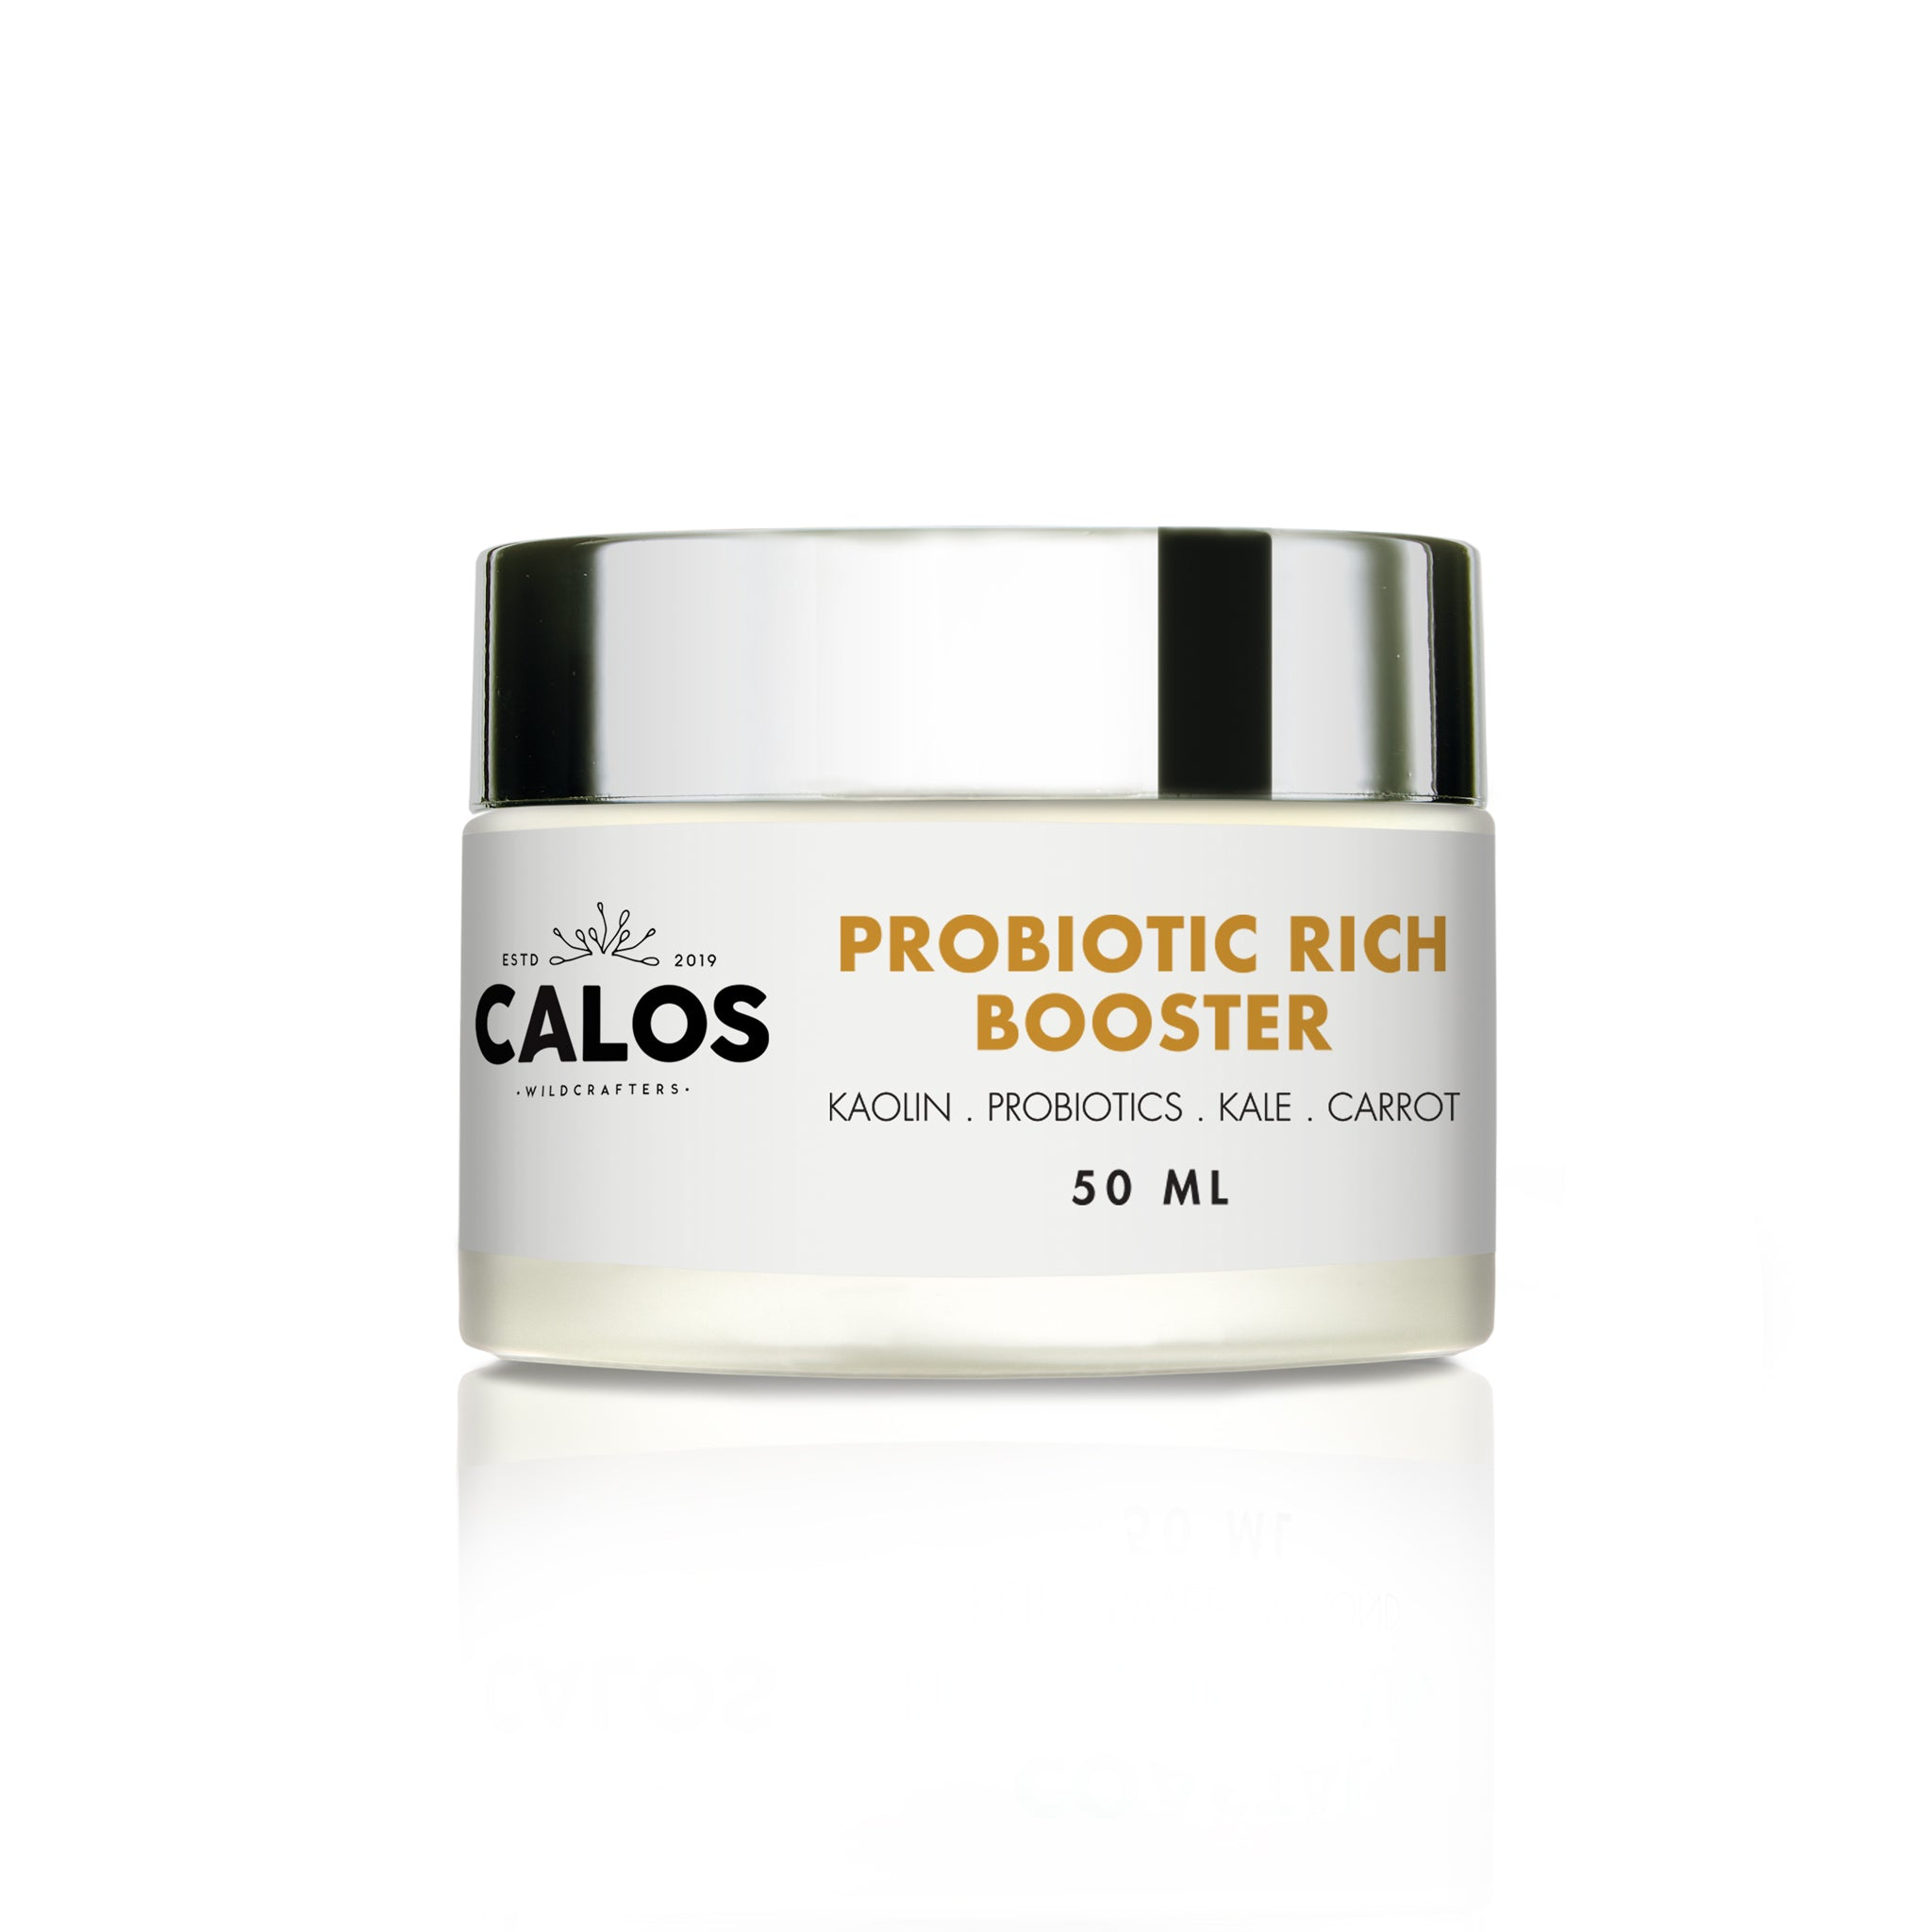 Probiotic Rich Booster - Mask - shopcalos